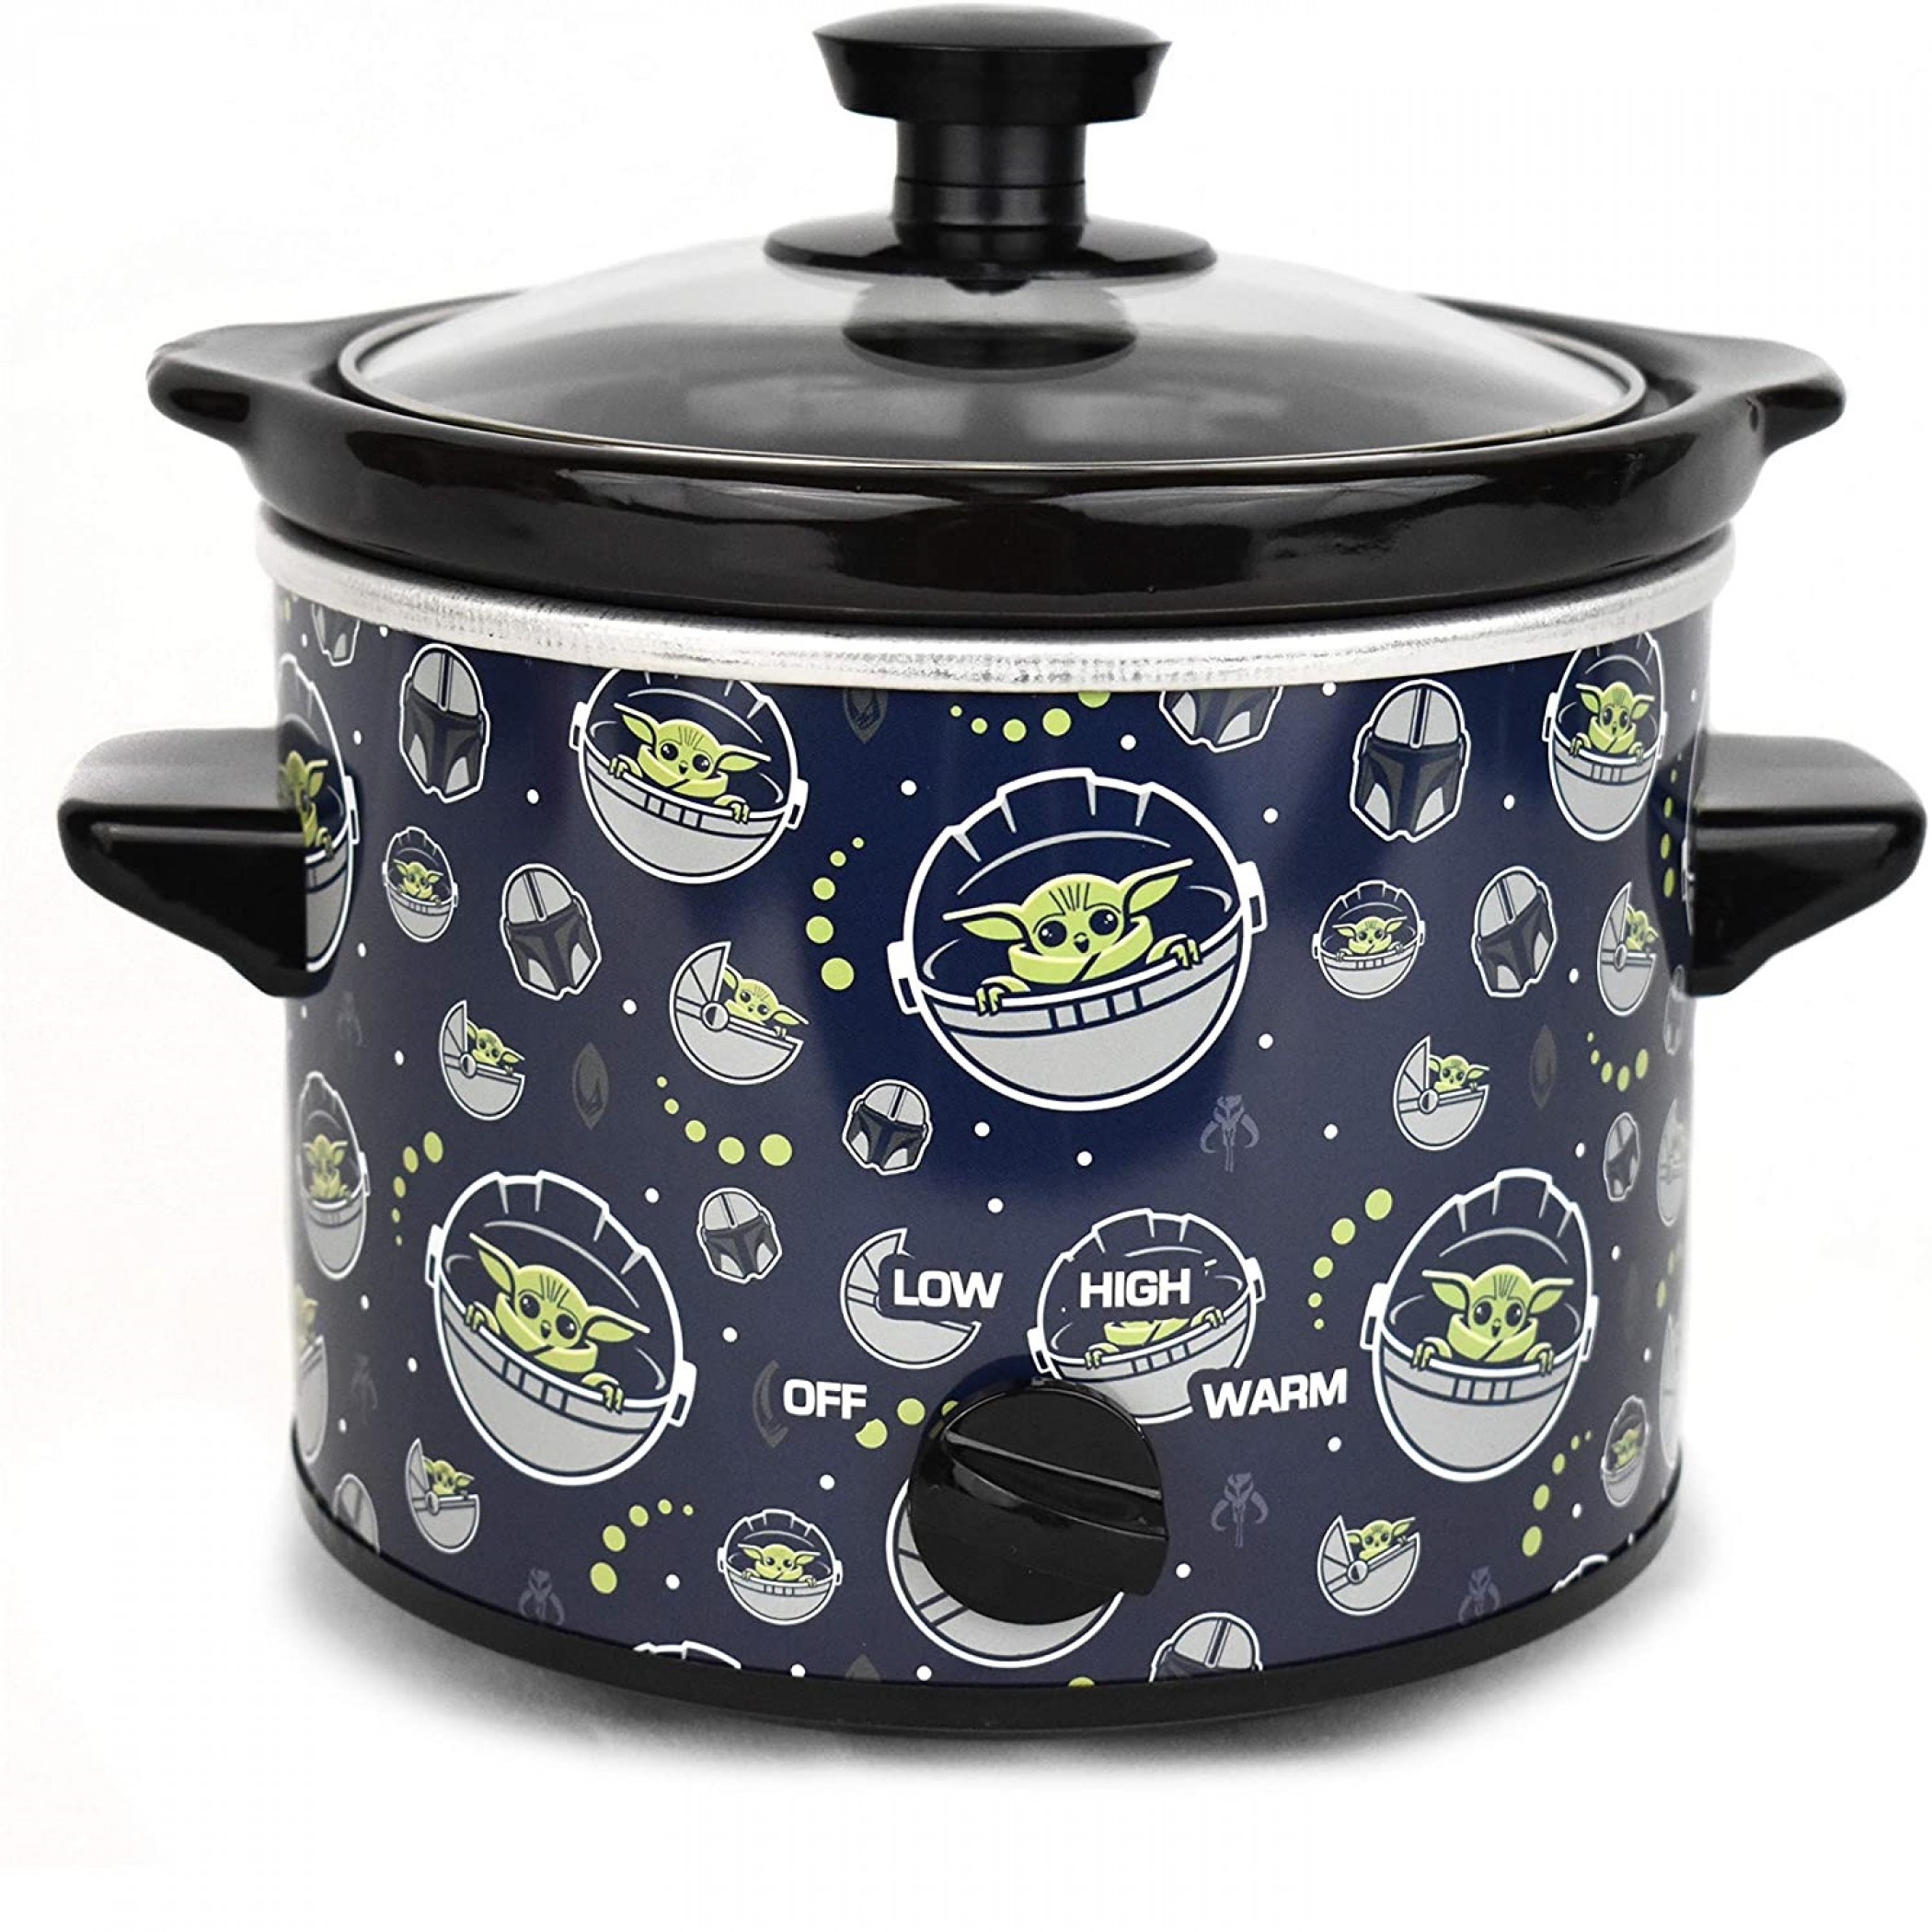 Star Wars The Mandalorian The Child Grogu All Over 2-Quart Slow Cooker